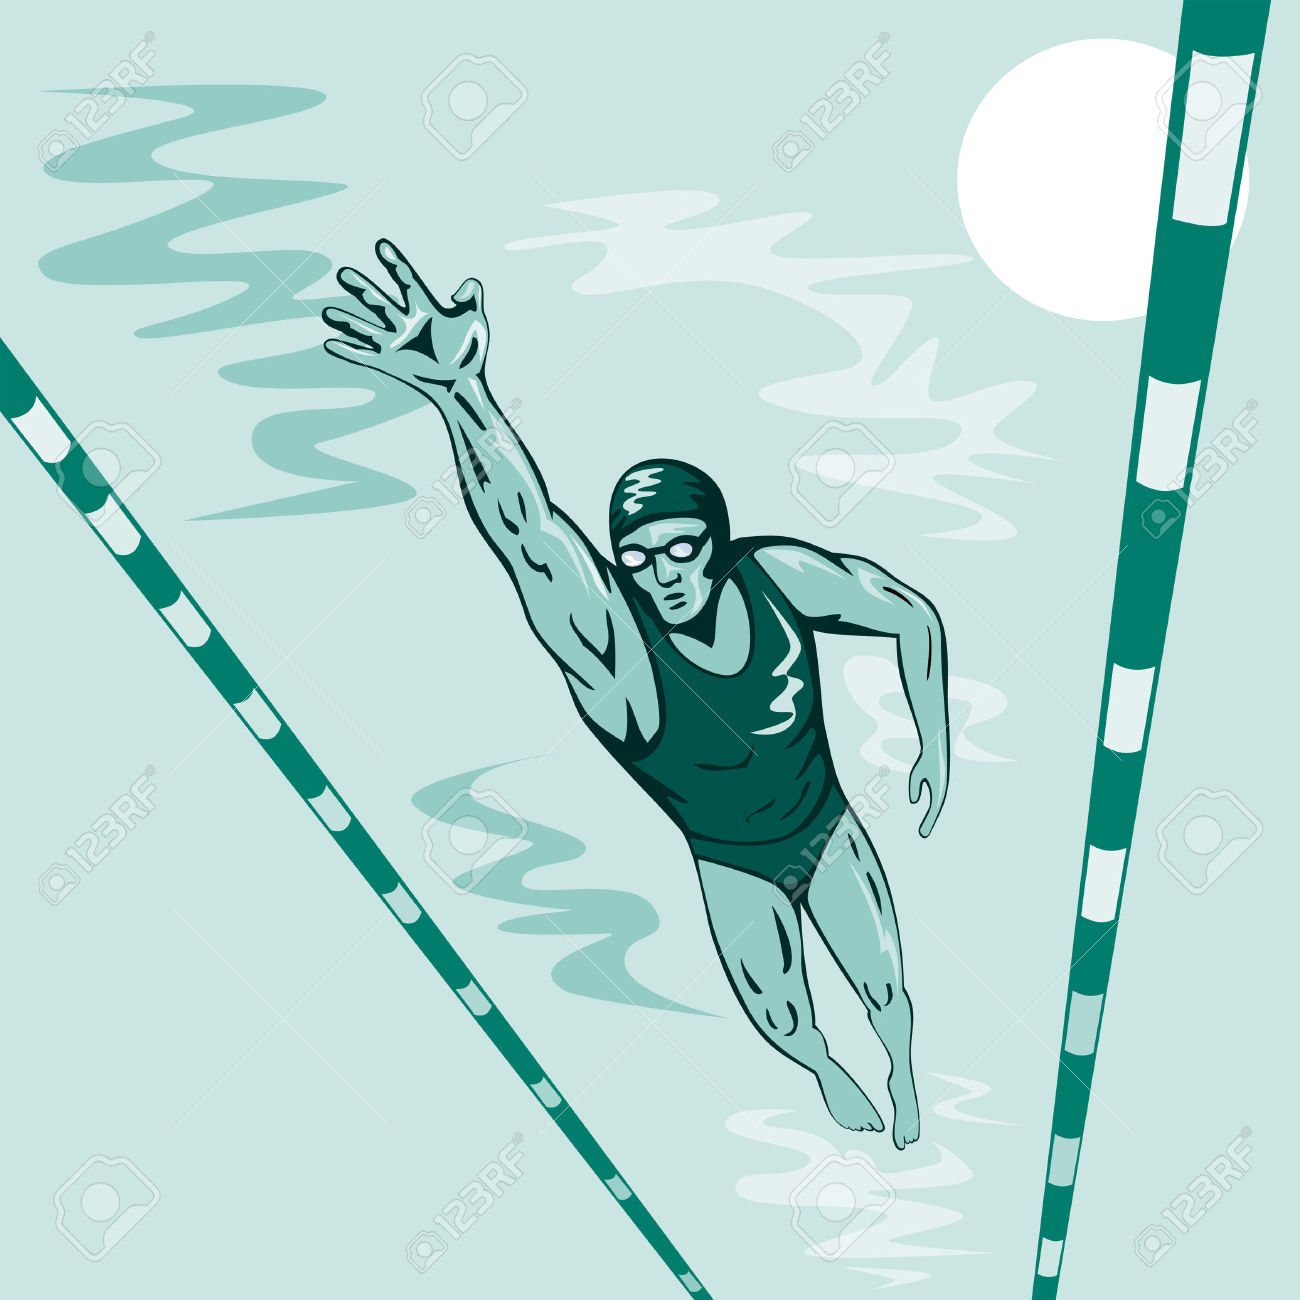 Competitive swimming pool clipart.